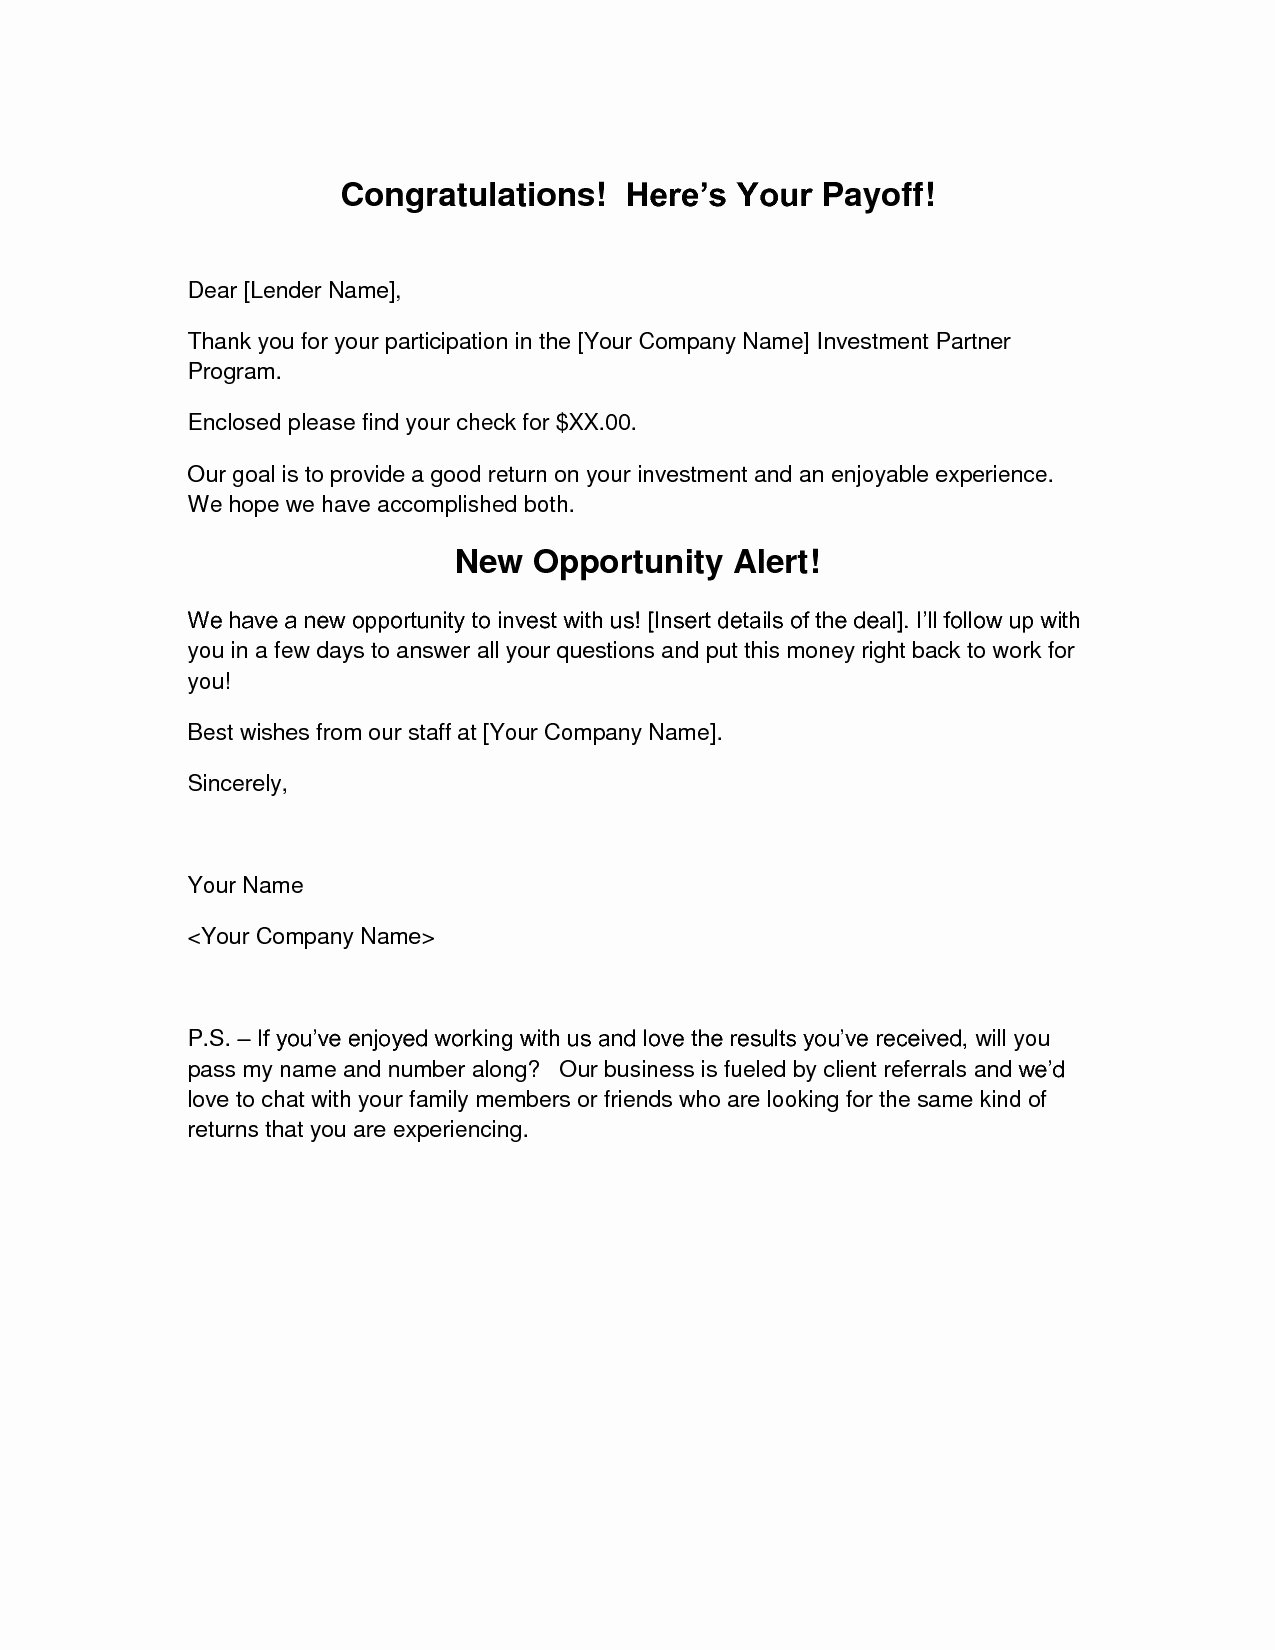 10 Day Payoff Letter Template Luxury Loan Payoff Letter Template Bluemooncatering